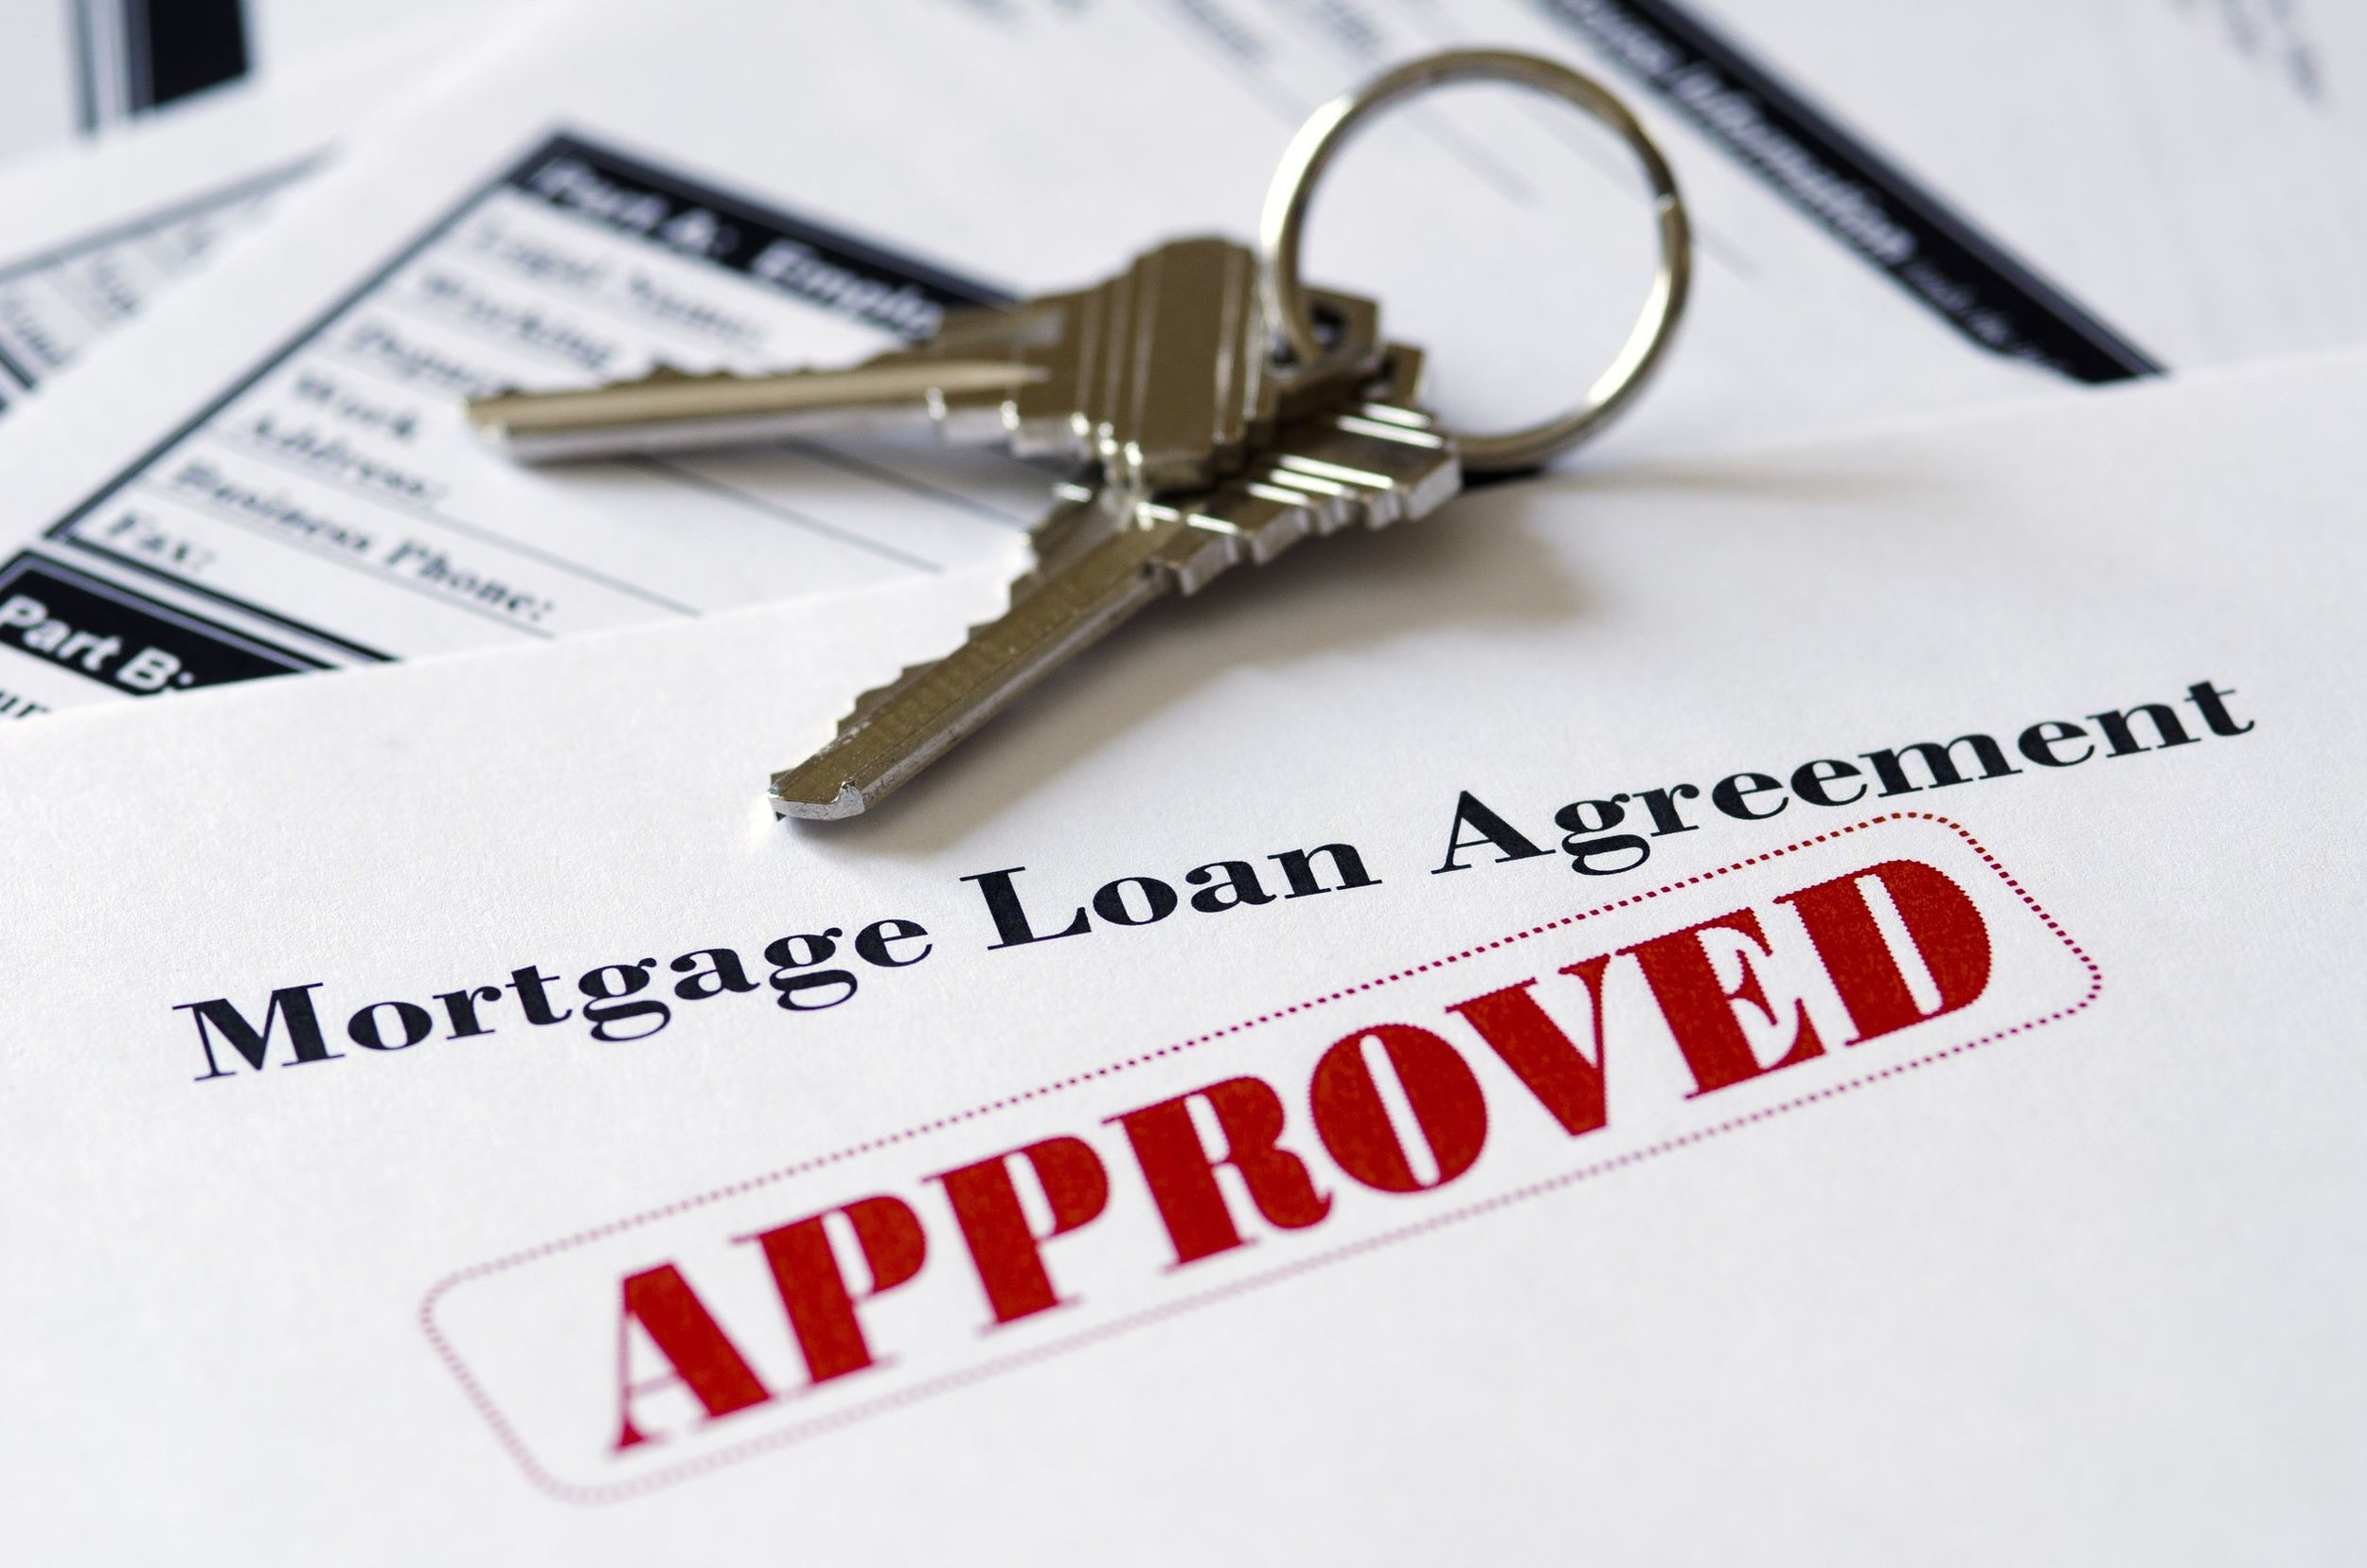 It is time to get mortgage approval